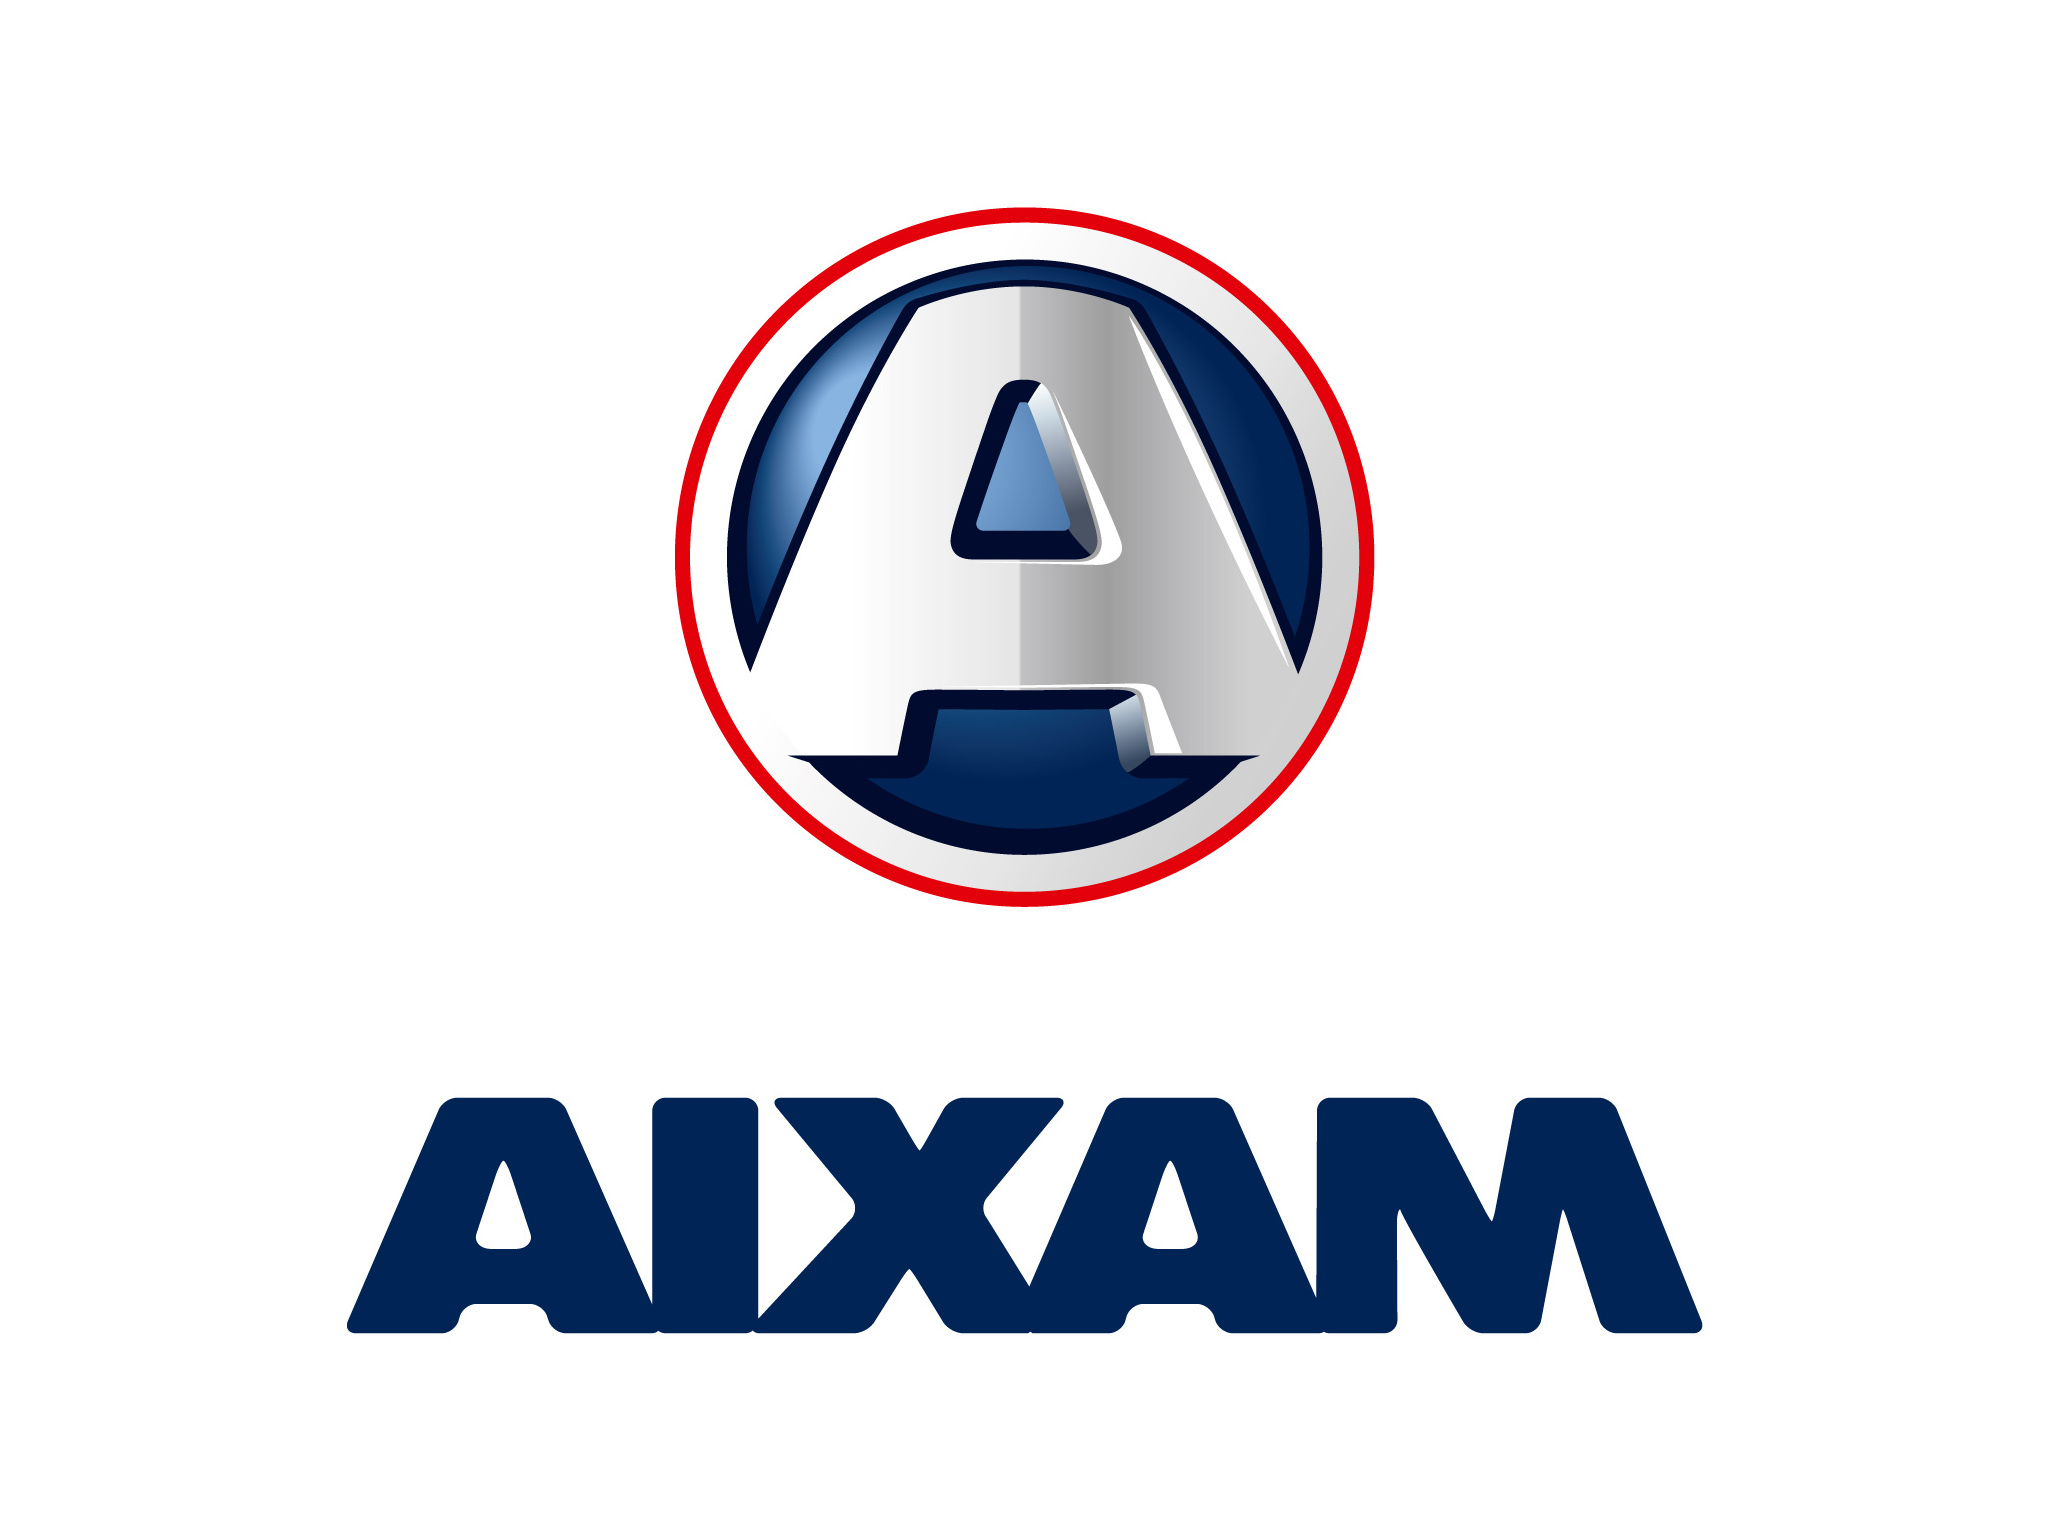 Aixam Logo Wallpaper